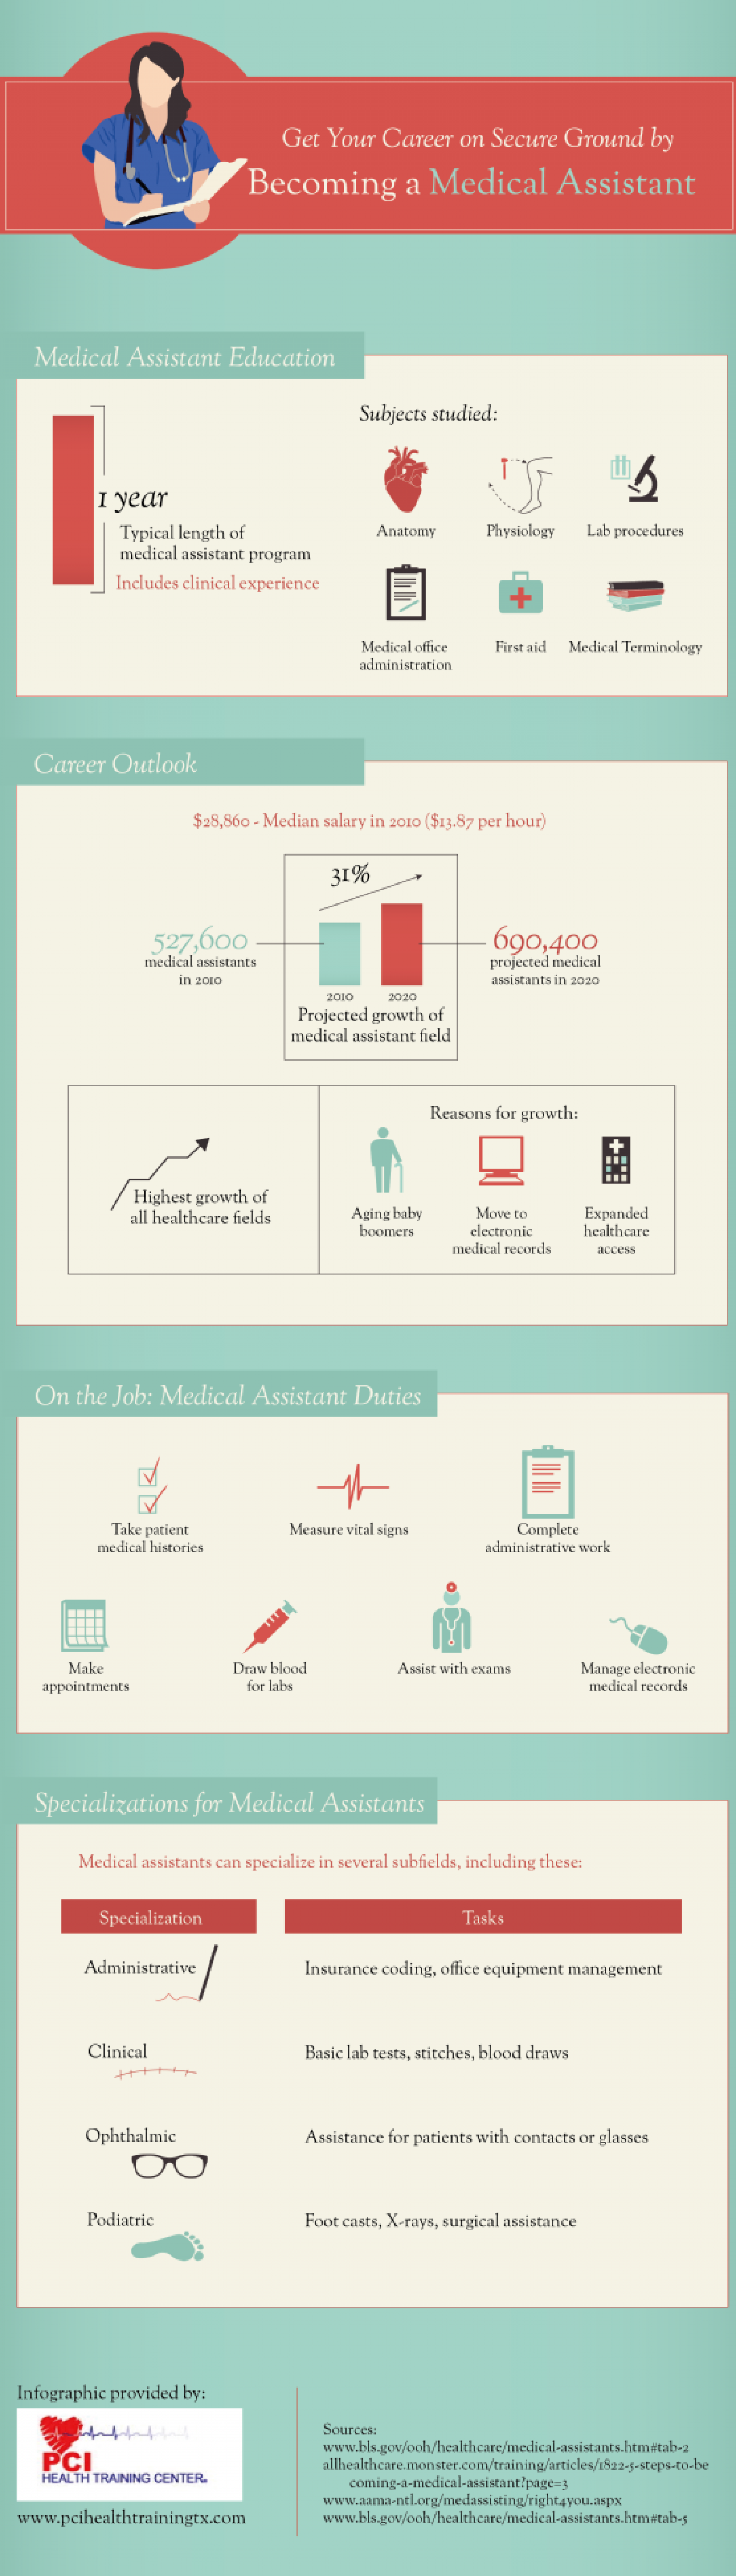 Get Your Career on Secure Ground by Becoming a Medical Assistant Infographic